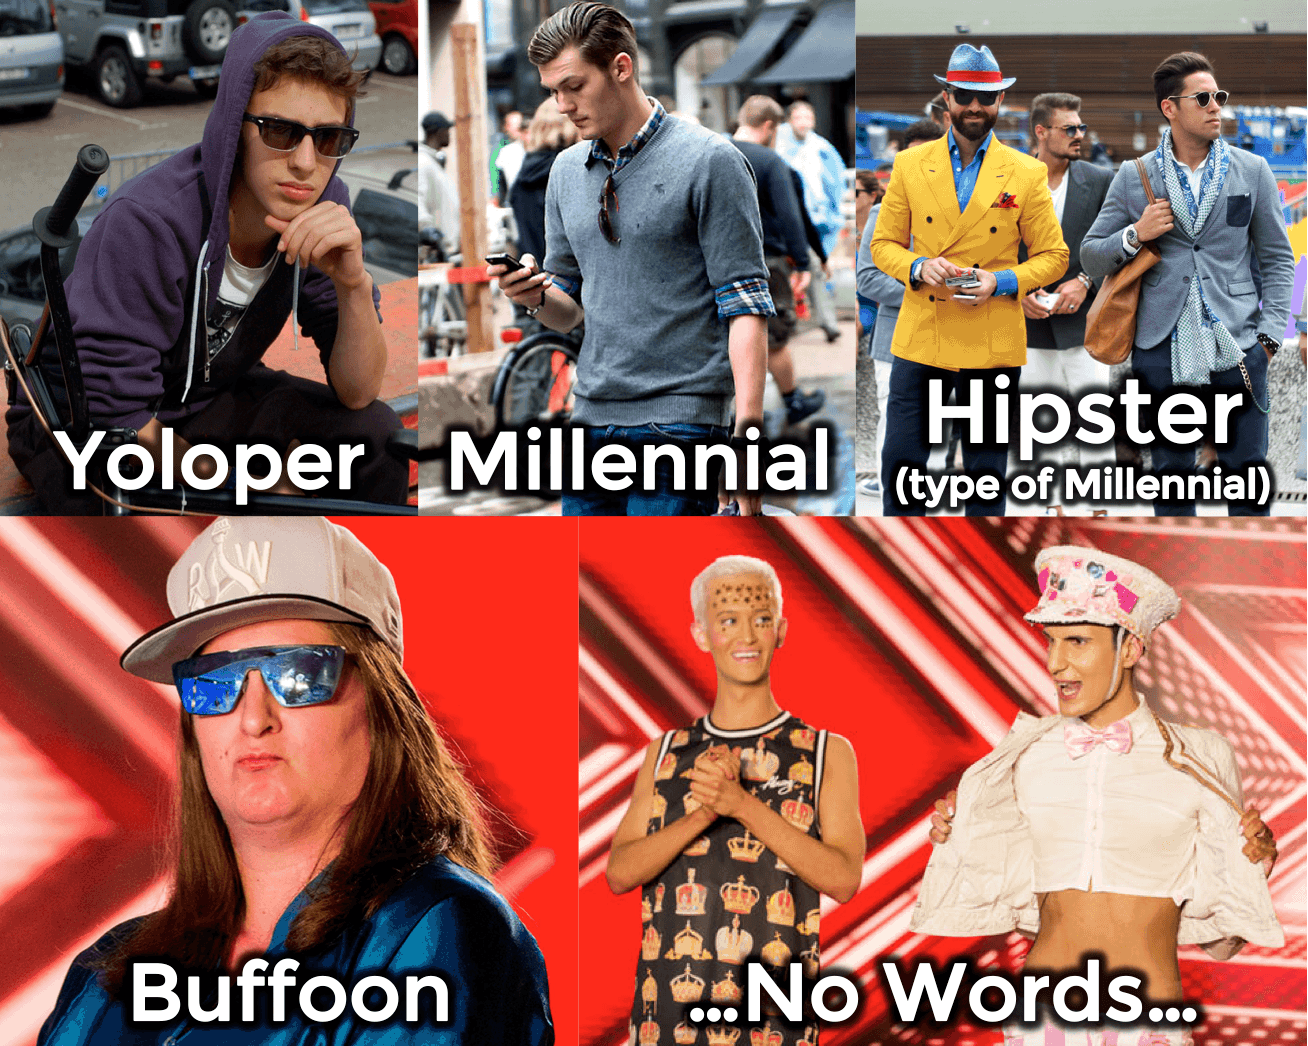 Millennials, Hipsters, Yolopers and others